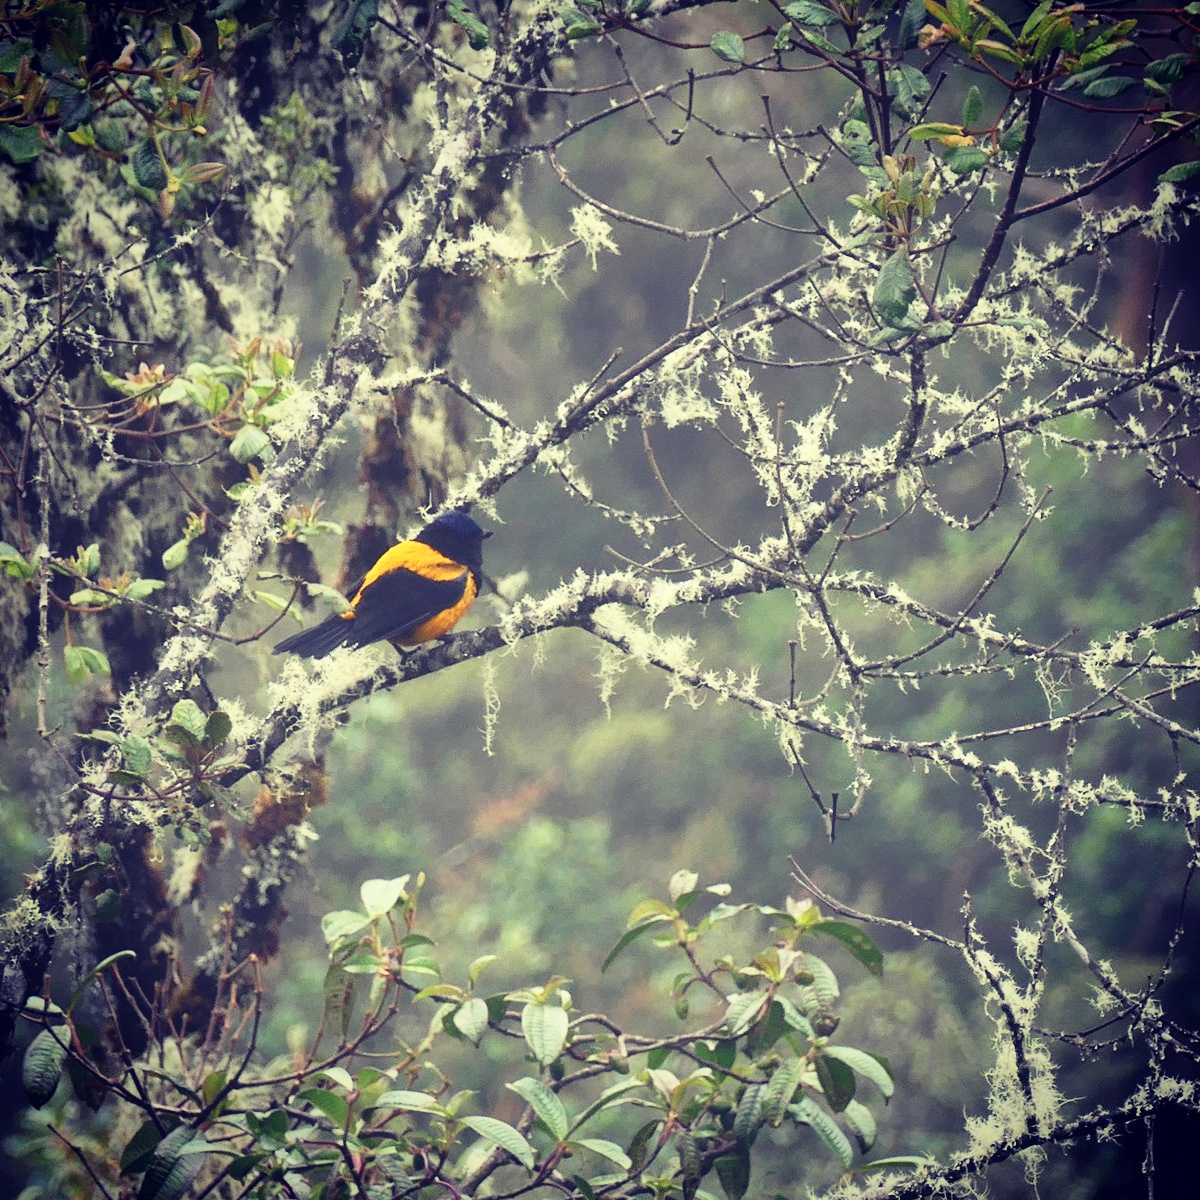 Noah's view of a Golden-backed Mountain-Tanager, one of Peru's rarest and most-wanted birds, at Unchog. Noah Strycker